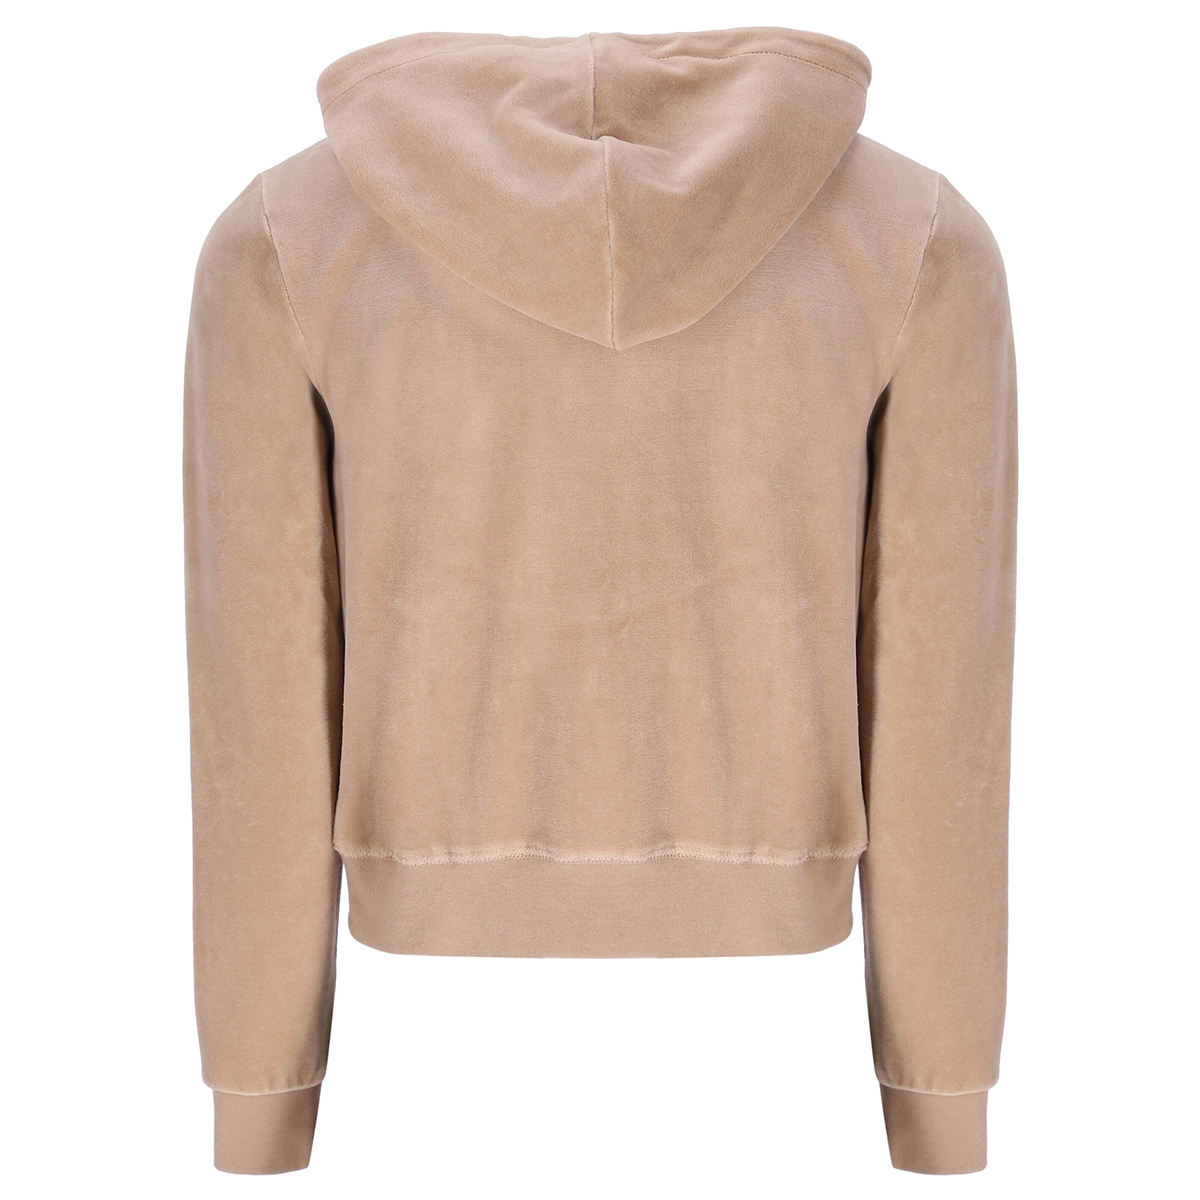 Juicy Couture - Jakke Roberston Velour Warm Taupe